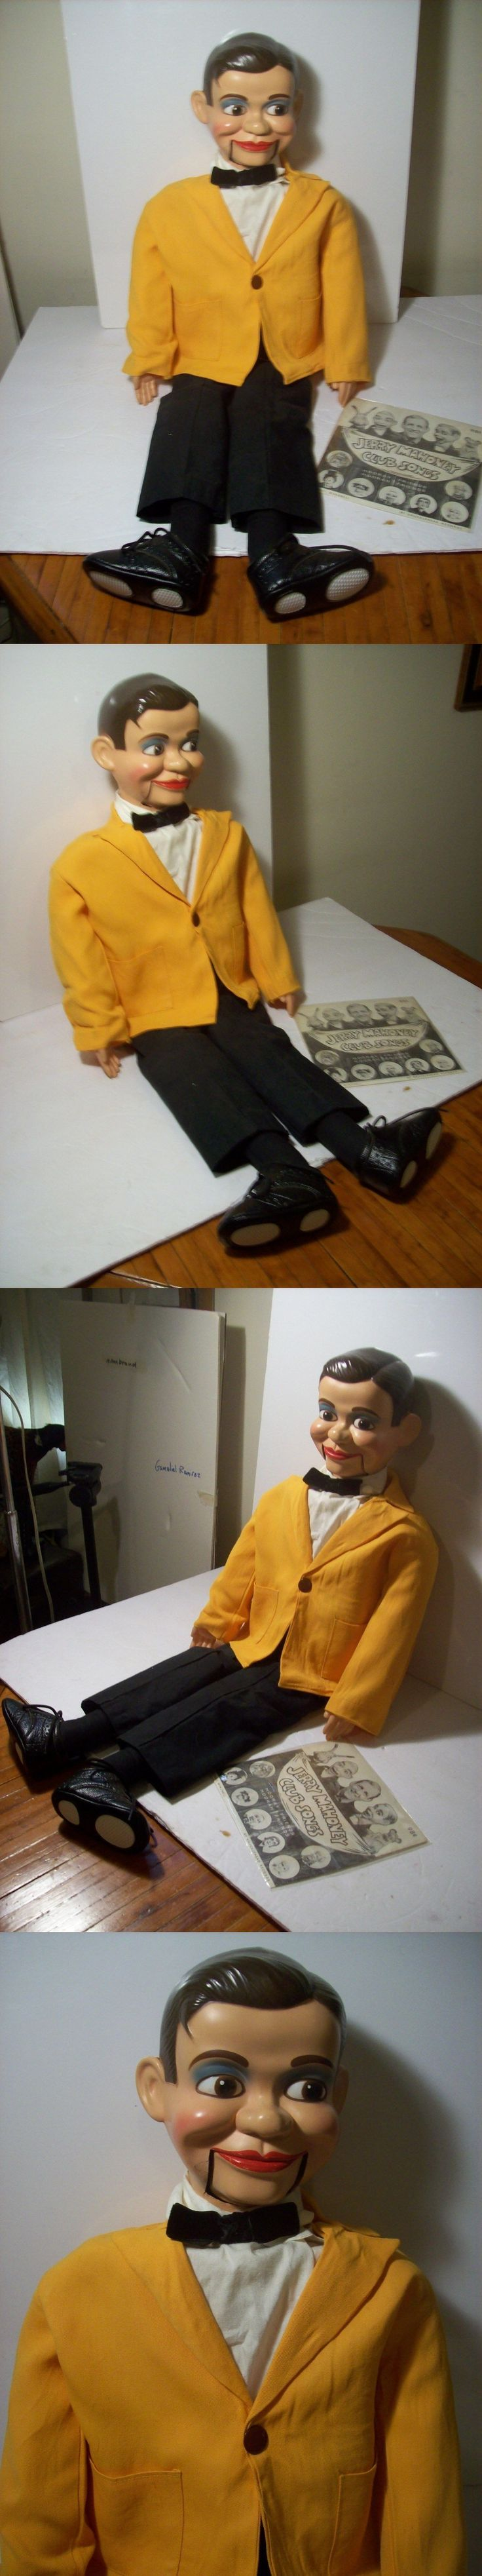 Character 723: Jerry Mahoney Ventriloquist Dummy Doll Puppet Paul Winchell 1963 -> BUY IT NOW ONLY: $199.99 on eBay!